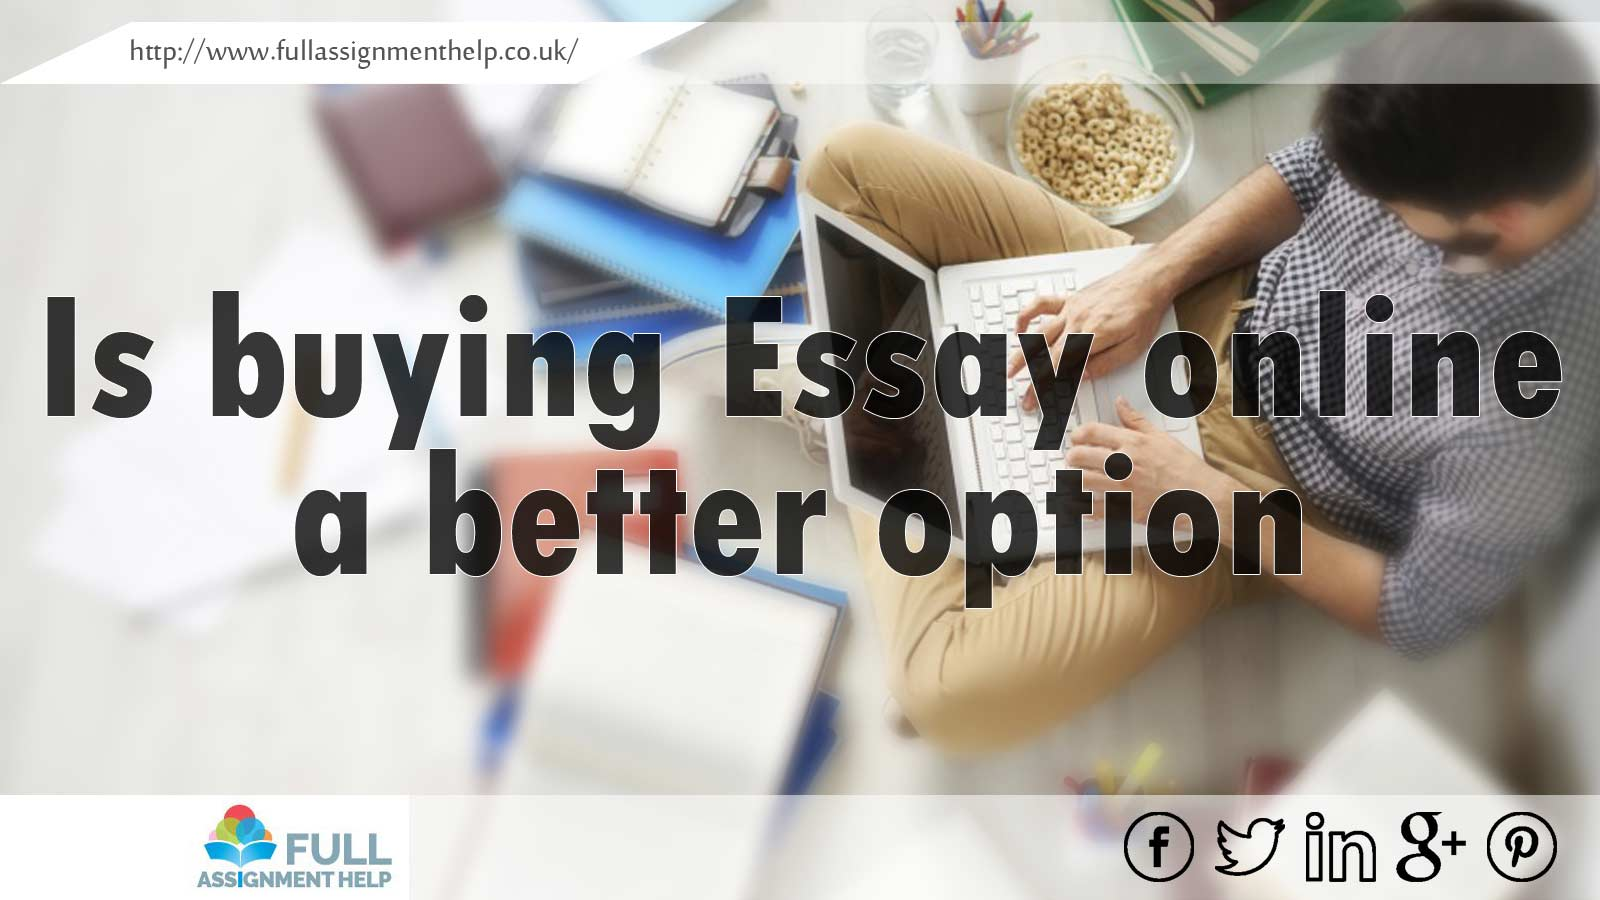 Buying essays